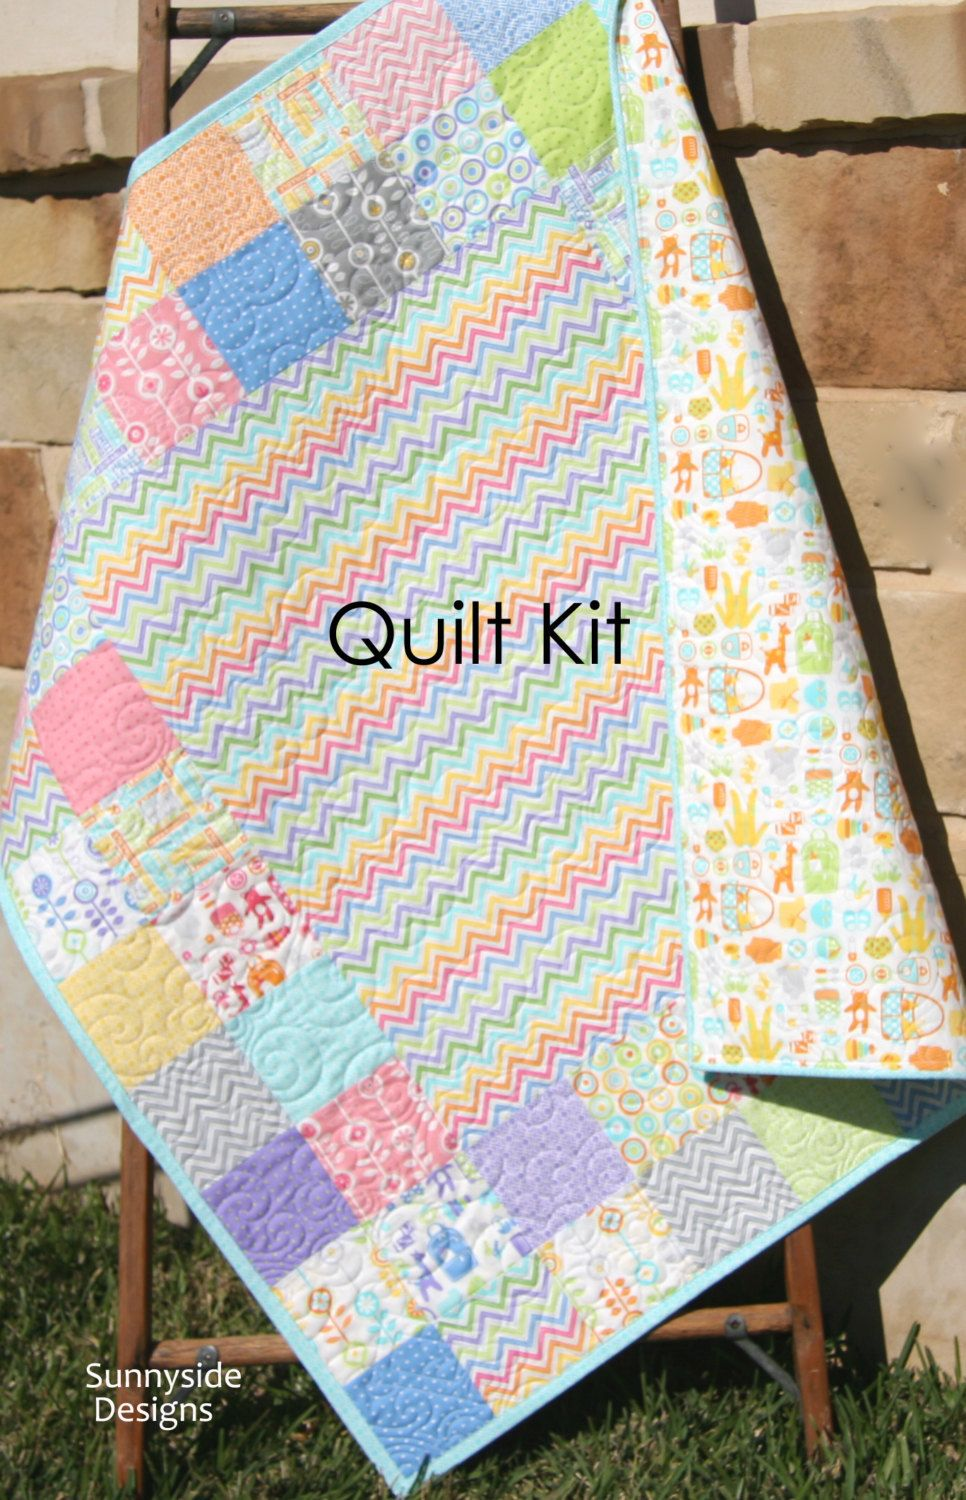 Traditional baby quilt kit bump to baby gina martin moda fabrics traditional baby quilt kit bump to baby gina martin moda fabrics chevron solutioingenieria Images